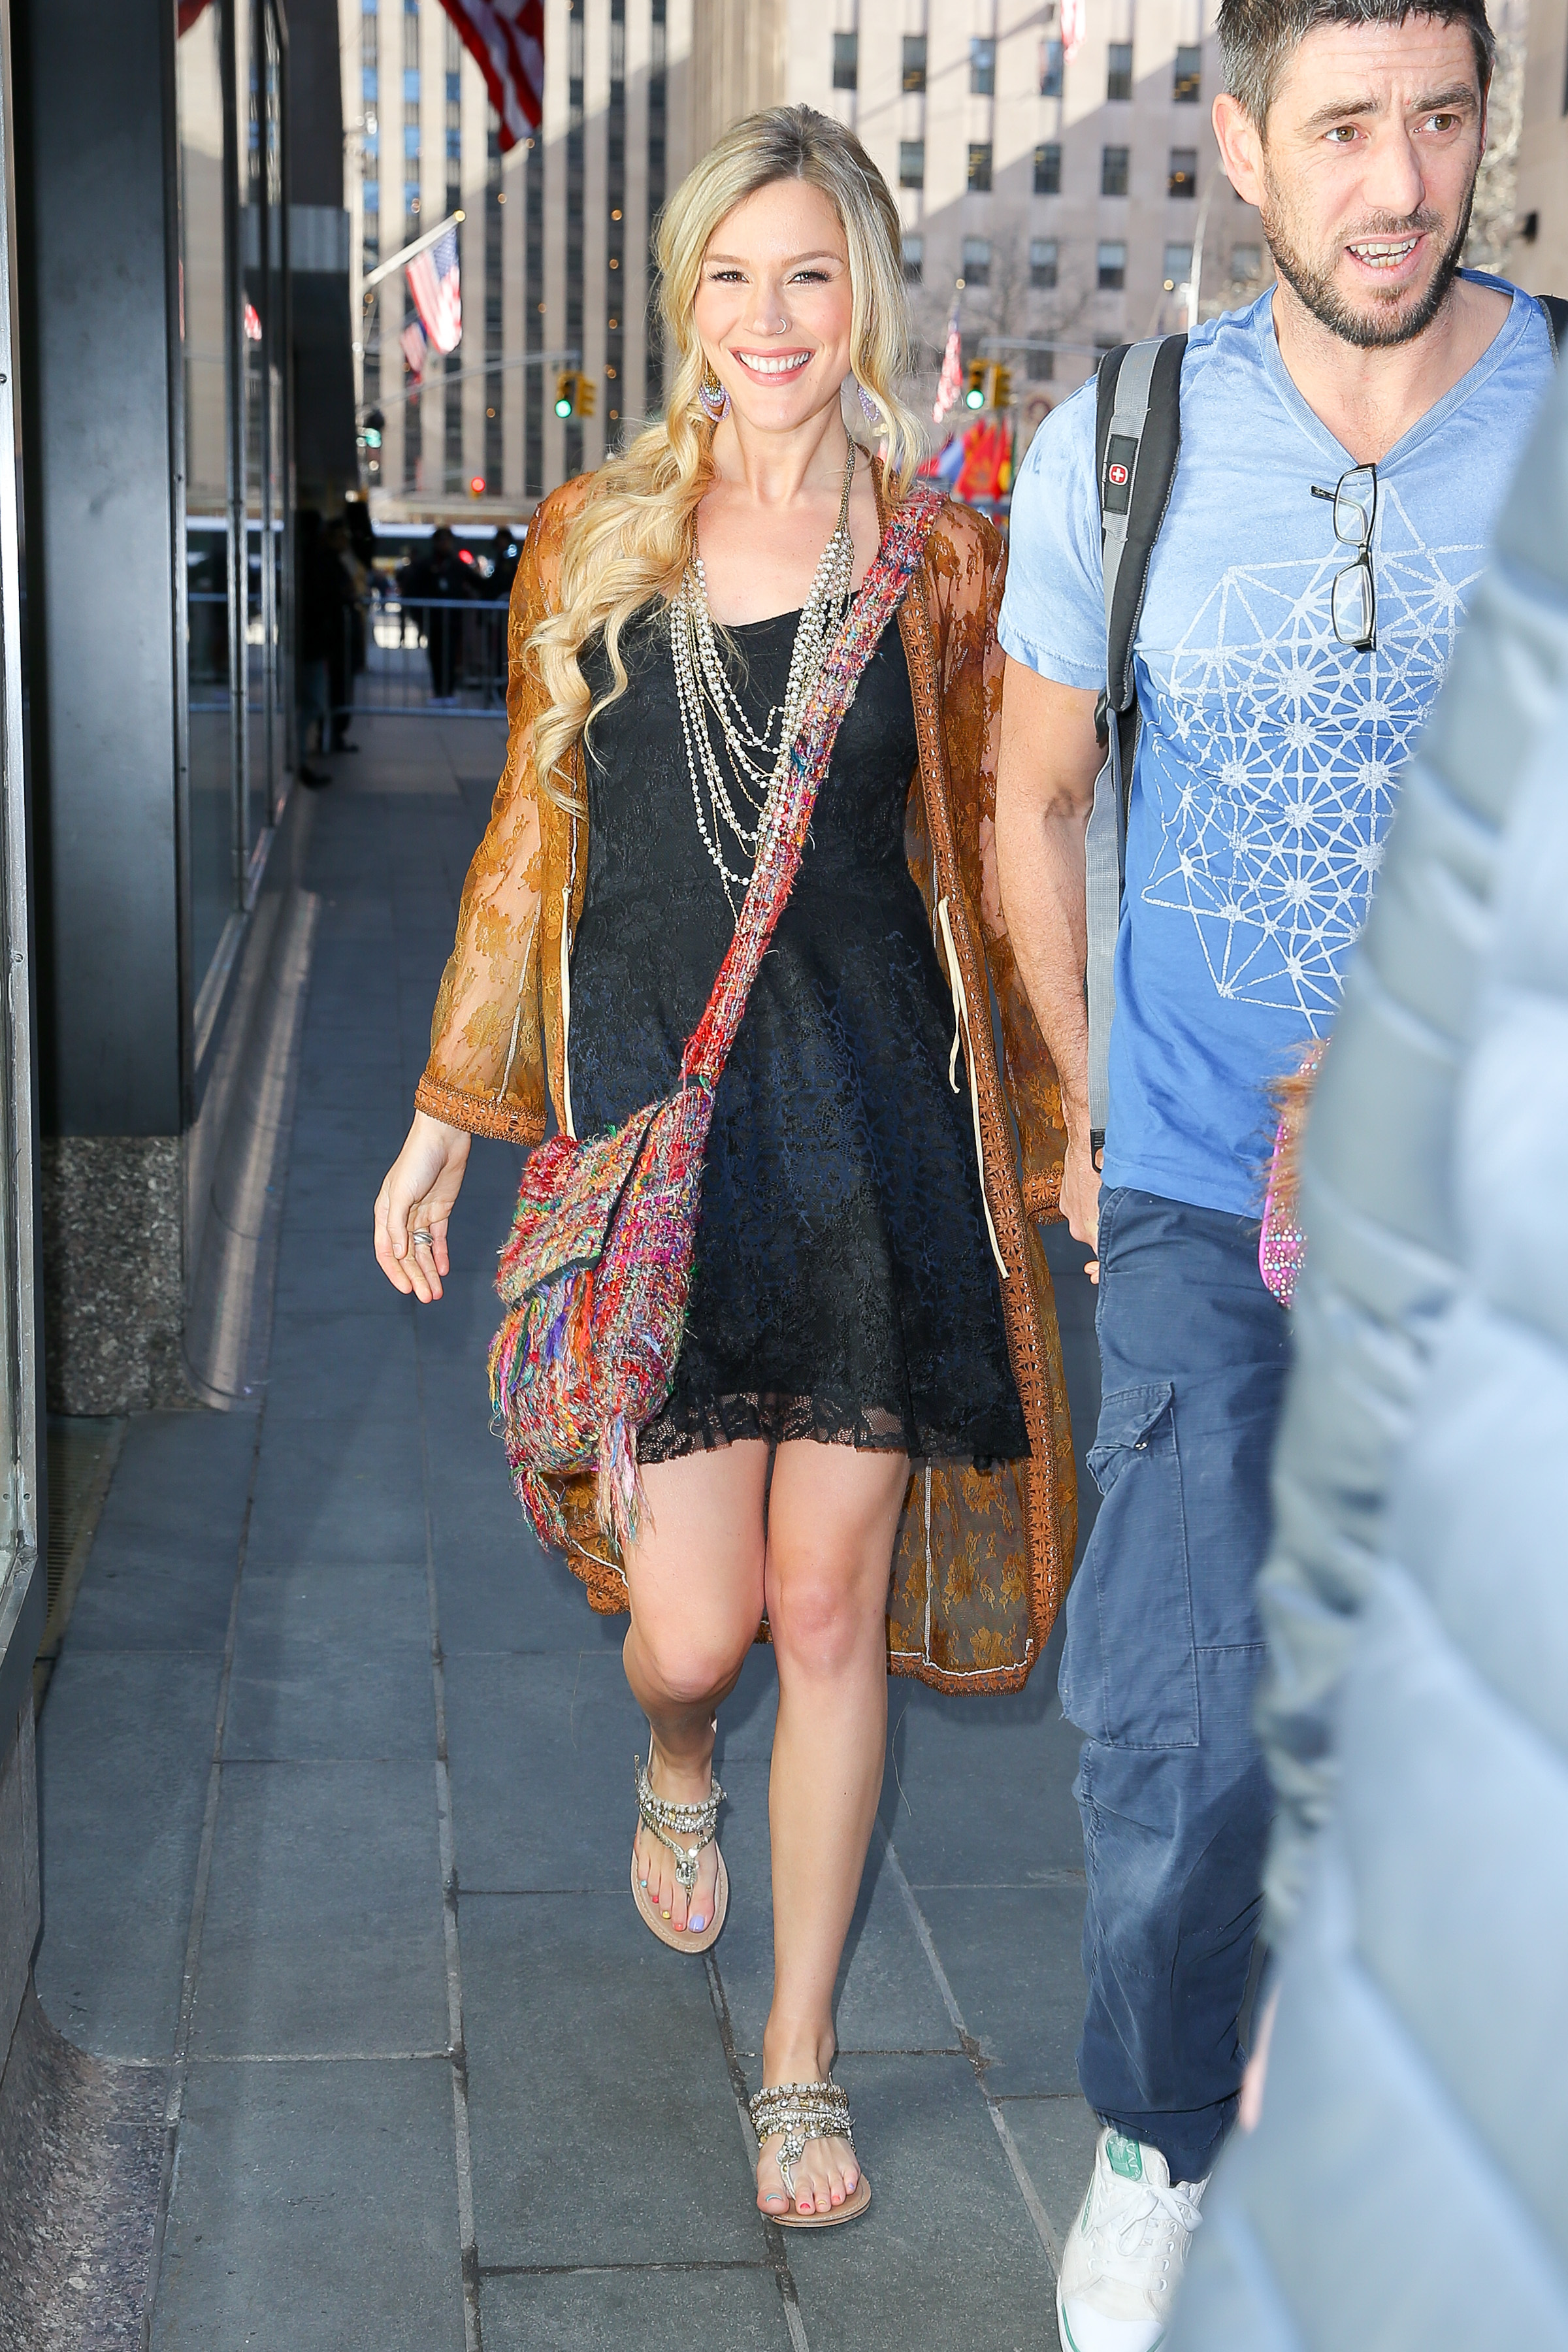 Sorry, that joss stone nude fakes quite tempting